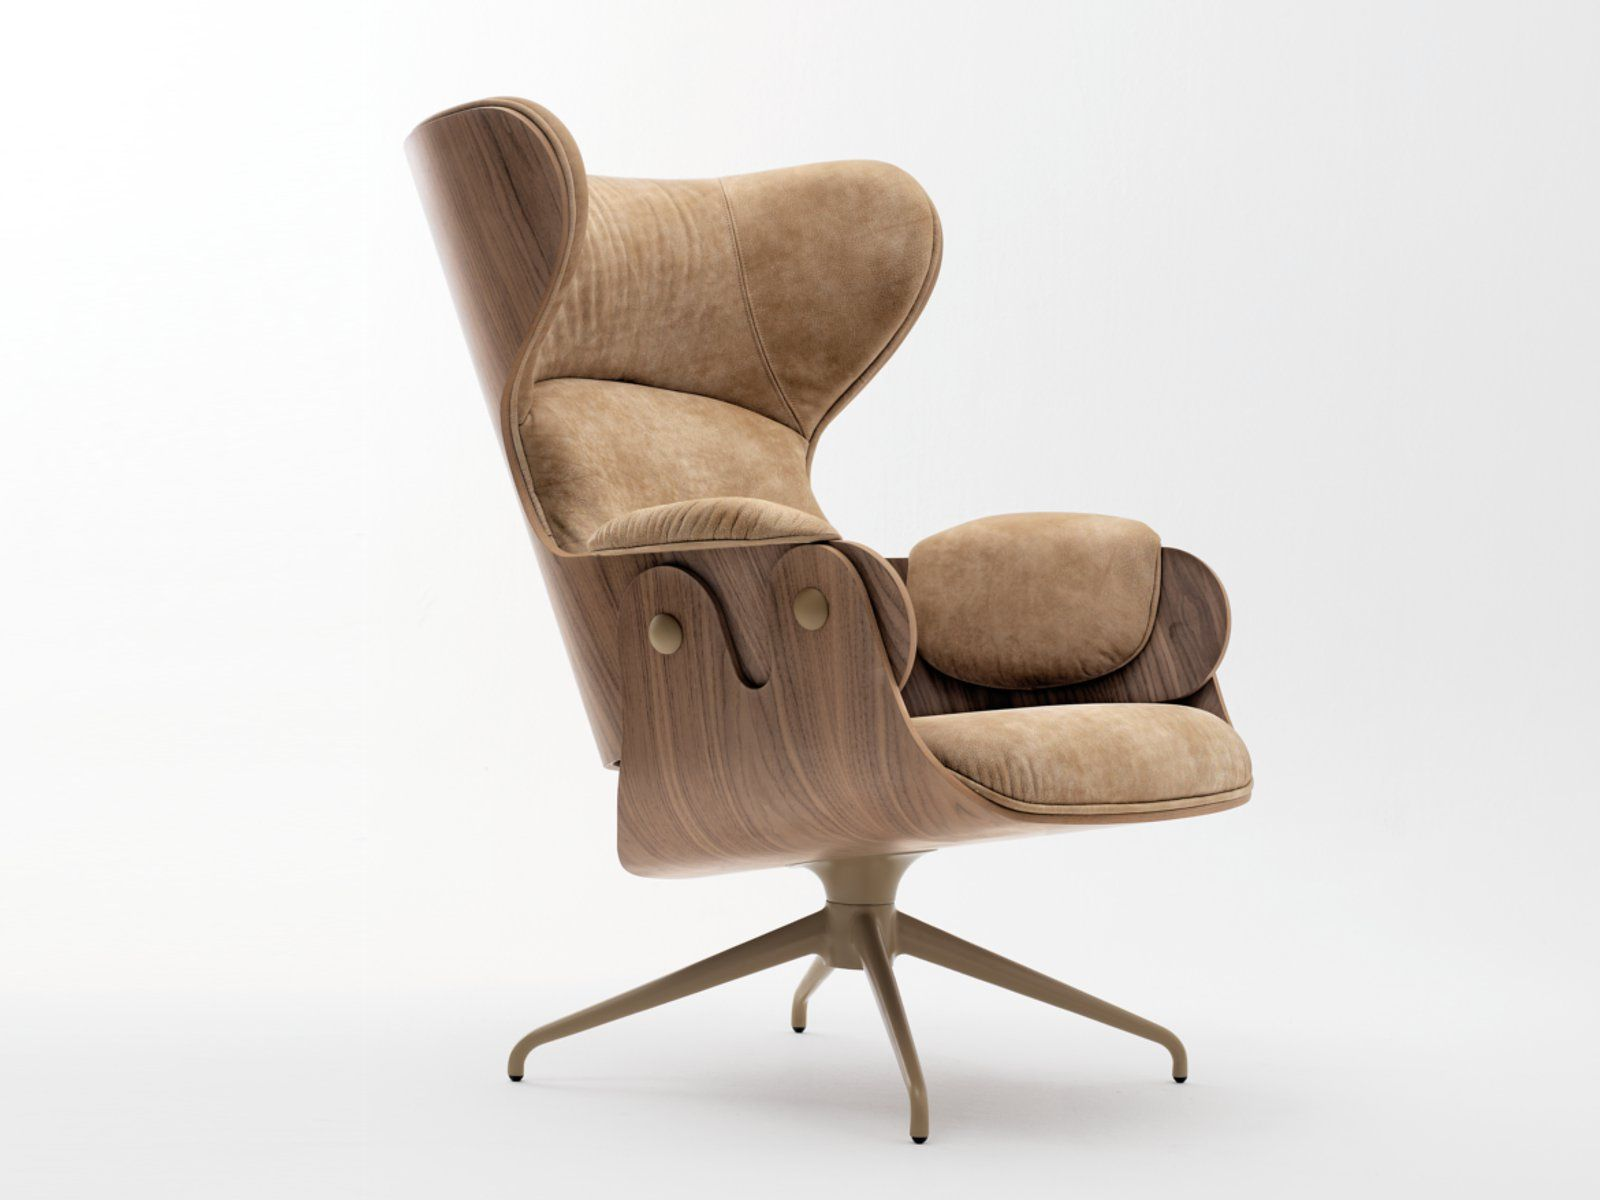 WINGCHAIR LOUNGER SHOWTIME COLLECTION BY BD BARCELONA DESIGN | DESIGN JAIME HAYÓN